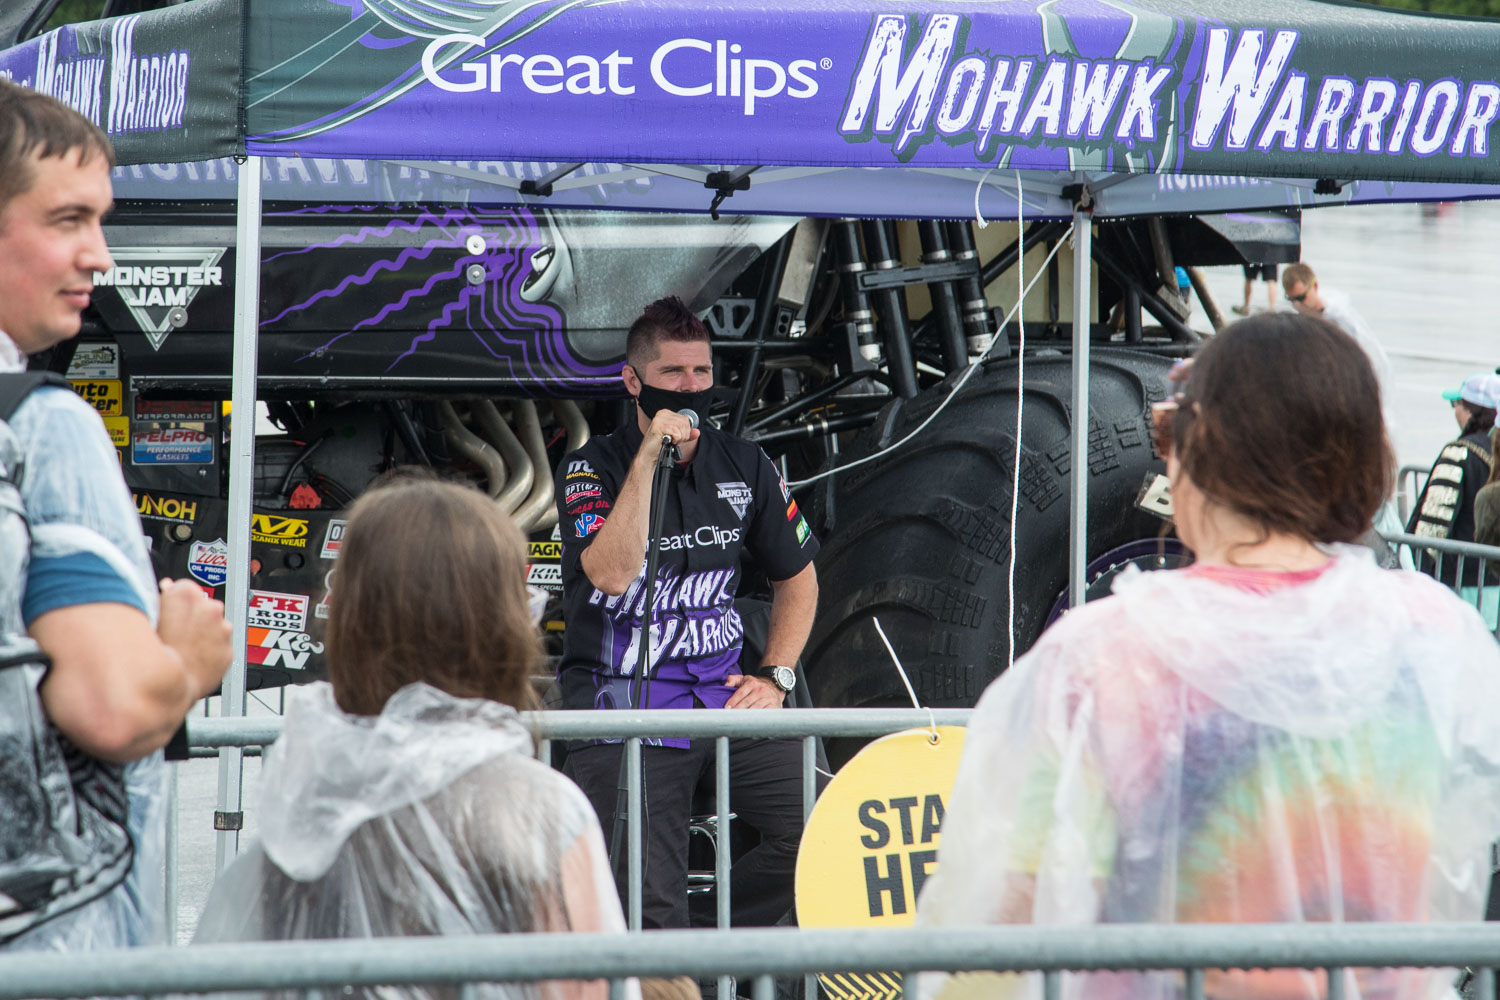 Fans participate in a Q&A session with Bryce Kenny, driver of the Great Clips Mohawk Warrior during the Monster Jam Pit Party prior to the main event at GEHA Field at Arrowhead on Saturday evening, June 26, 2021.